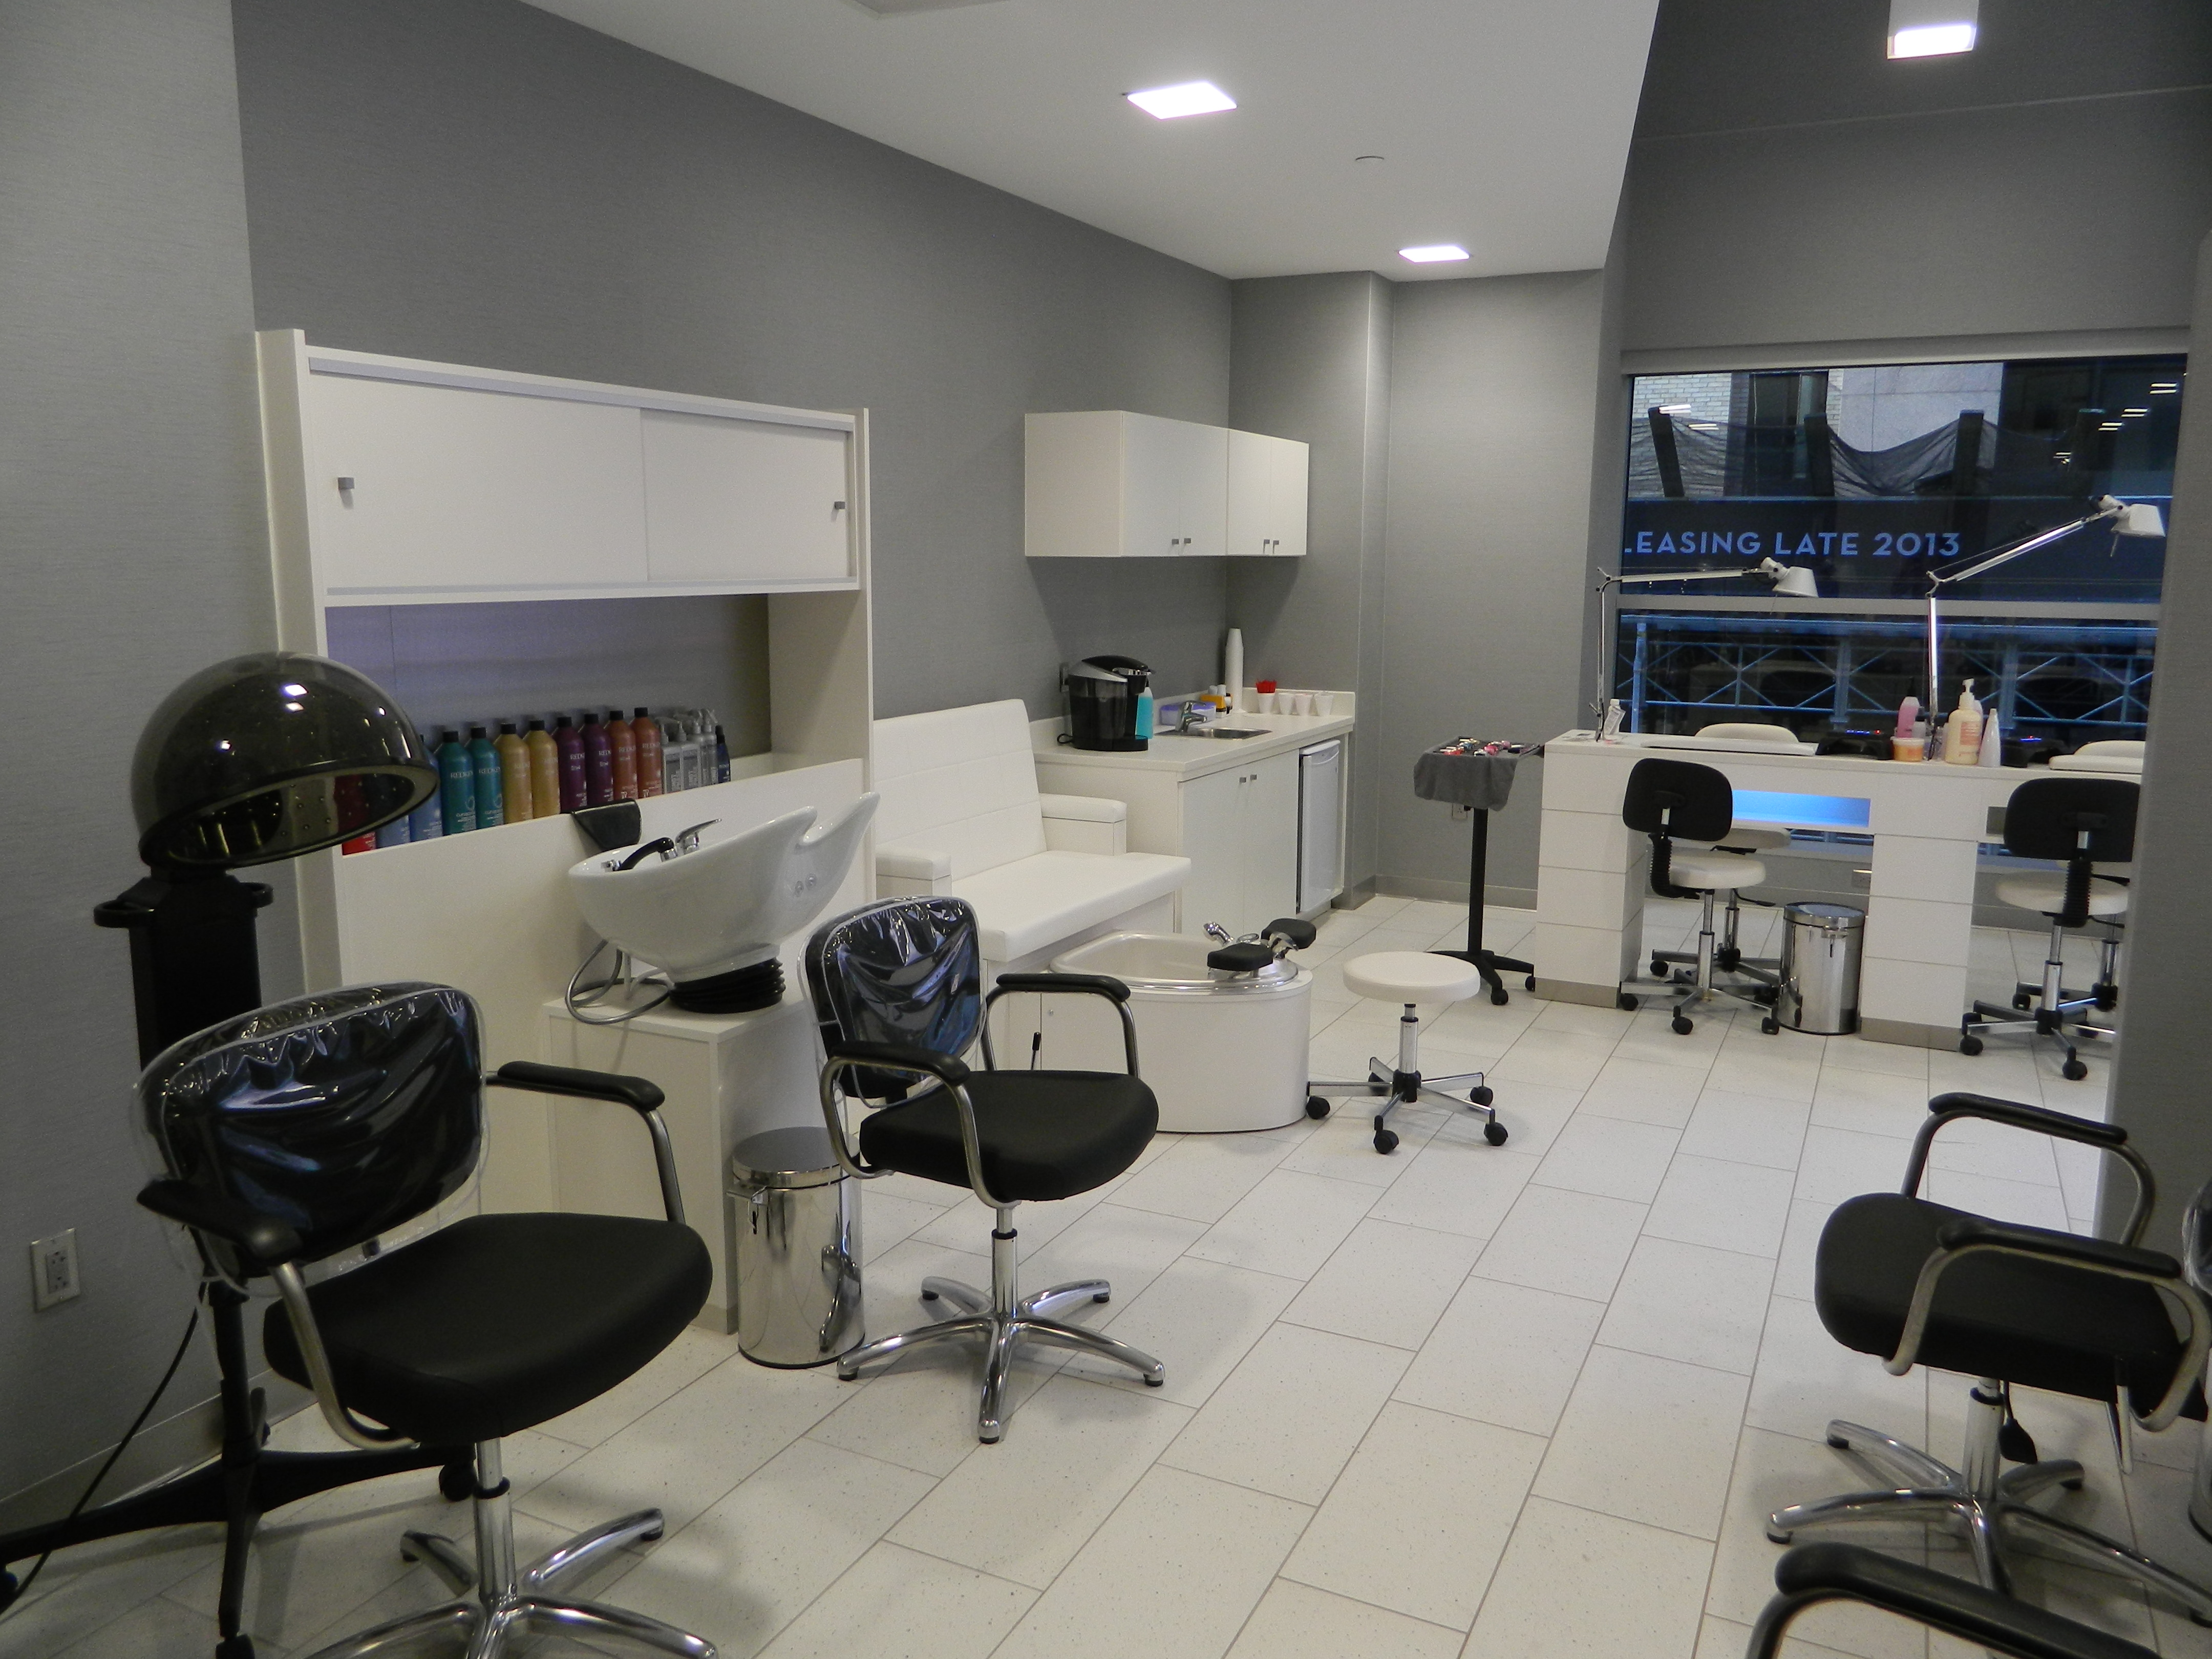 What services does the ulta beauty salon offer its for Ulta hair salon